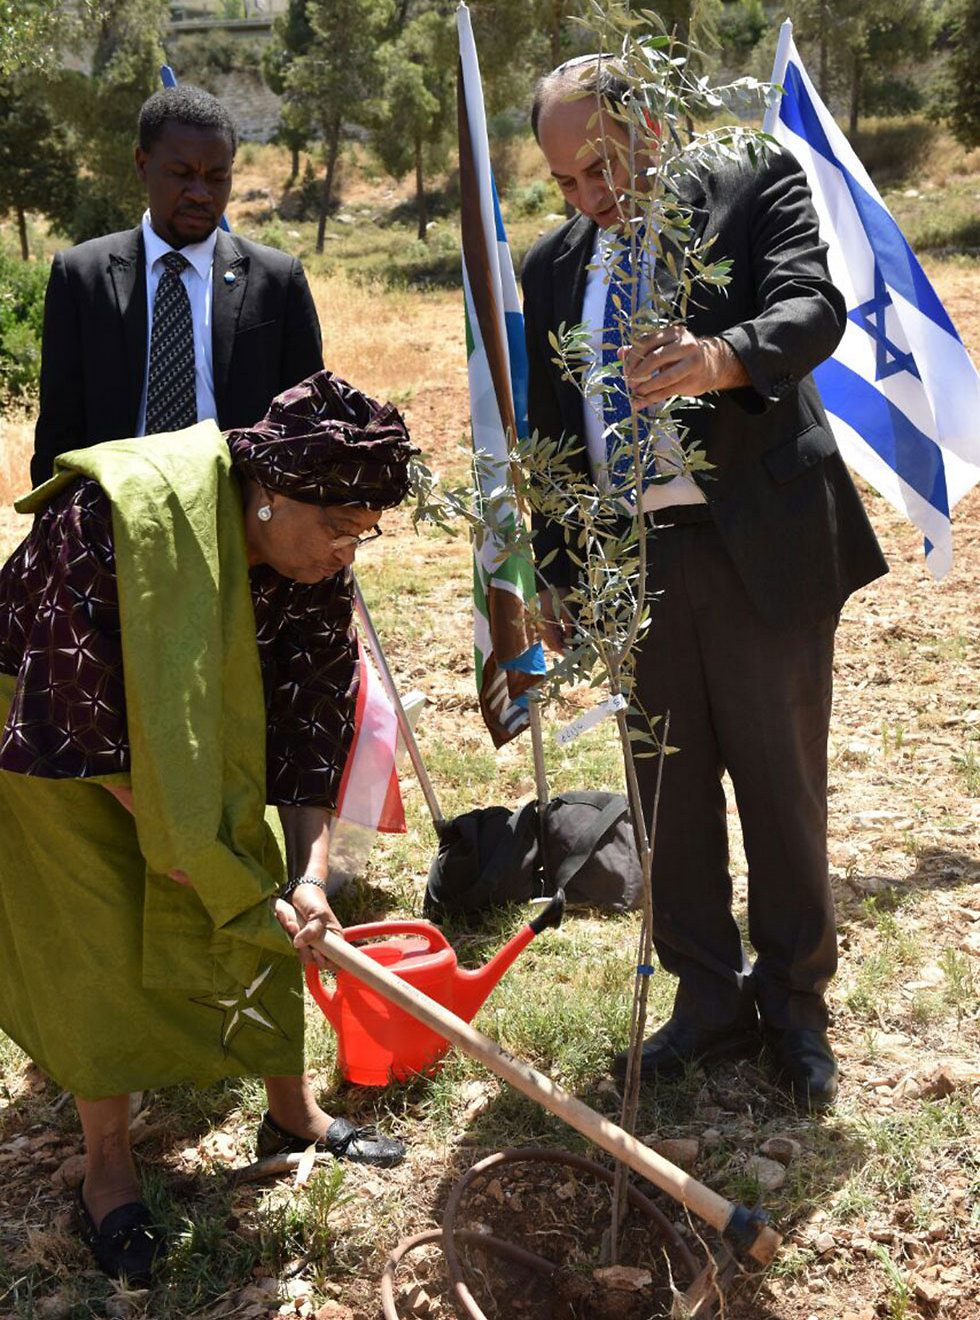 President Sirleaf planting perform the Zionist tradition of planting a tree in Israel (Photo: Shlomi Amsalem, Israeli Foreign Ministry)